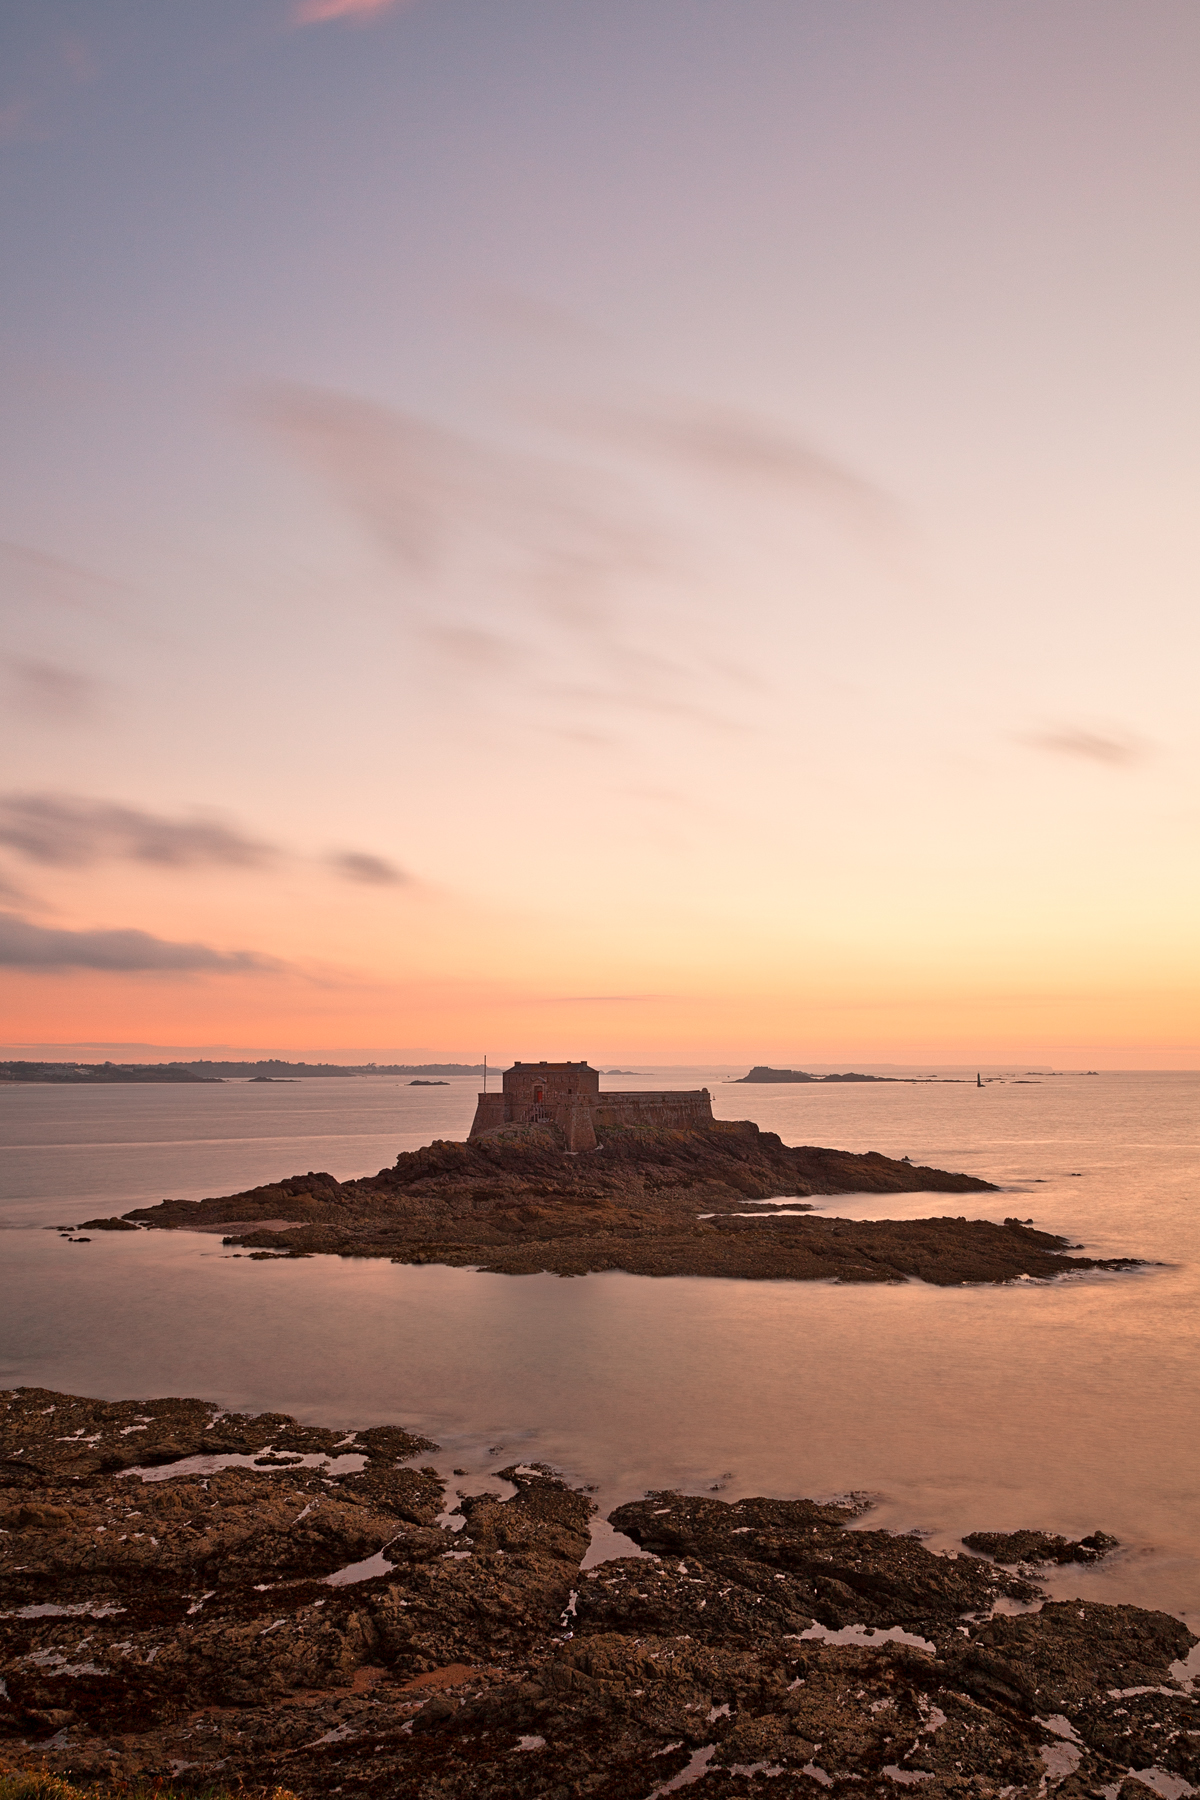 Saint-malo twilight - hdr photo